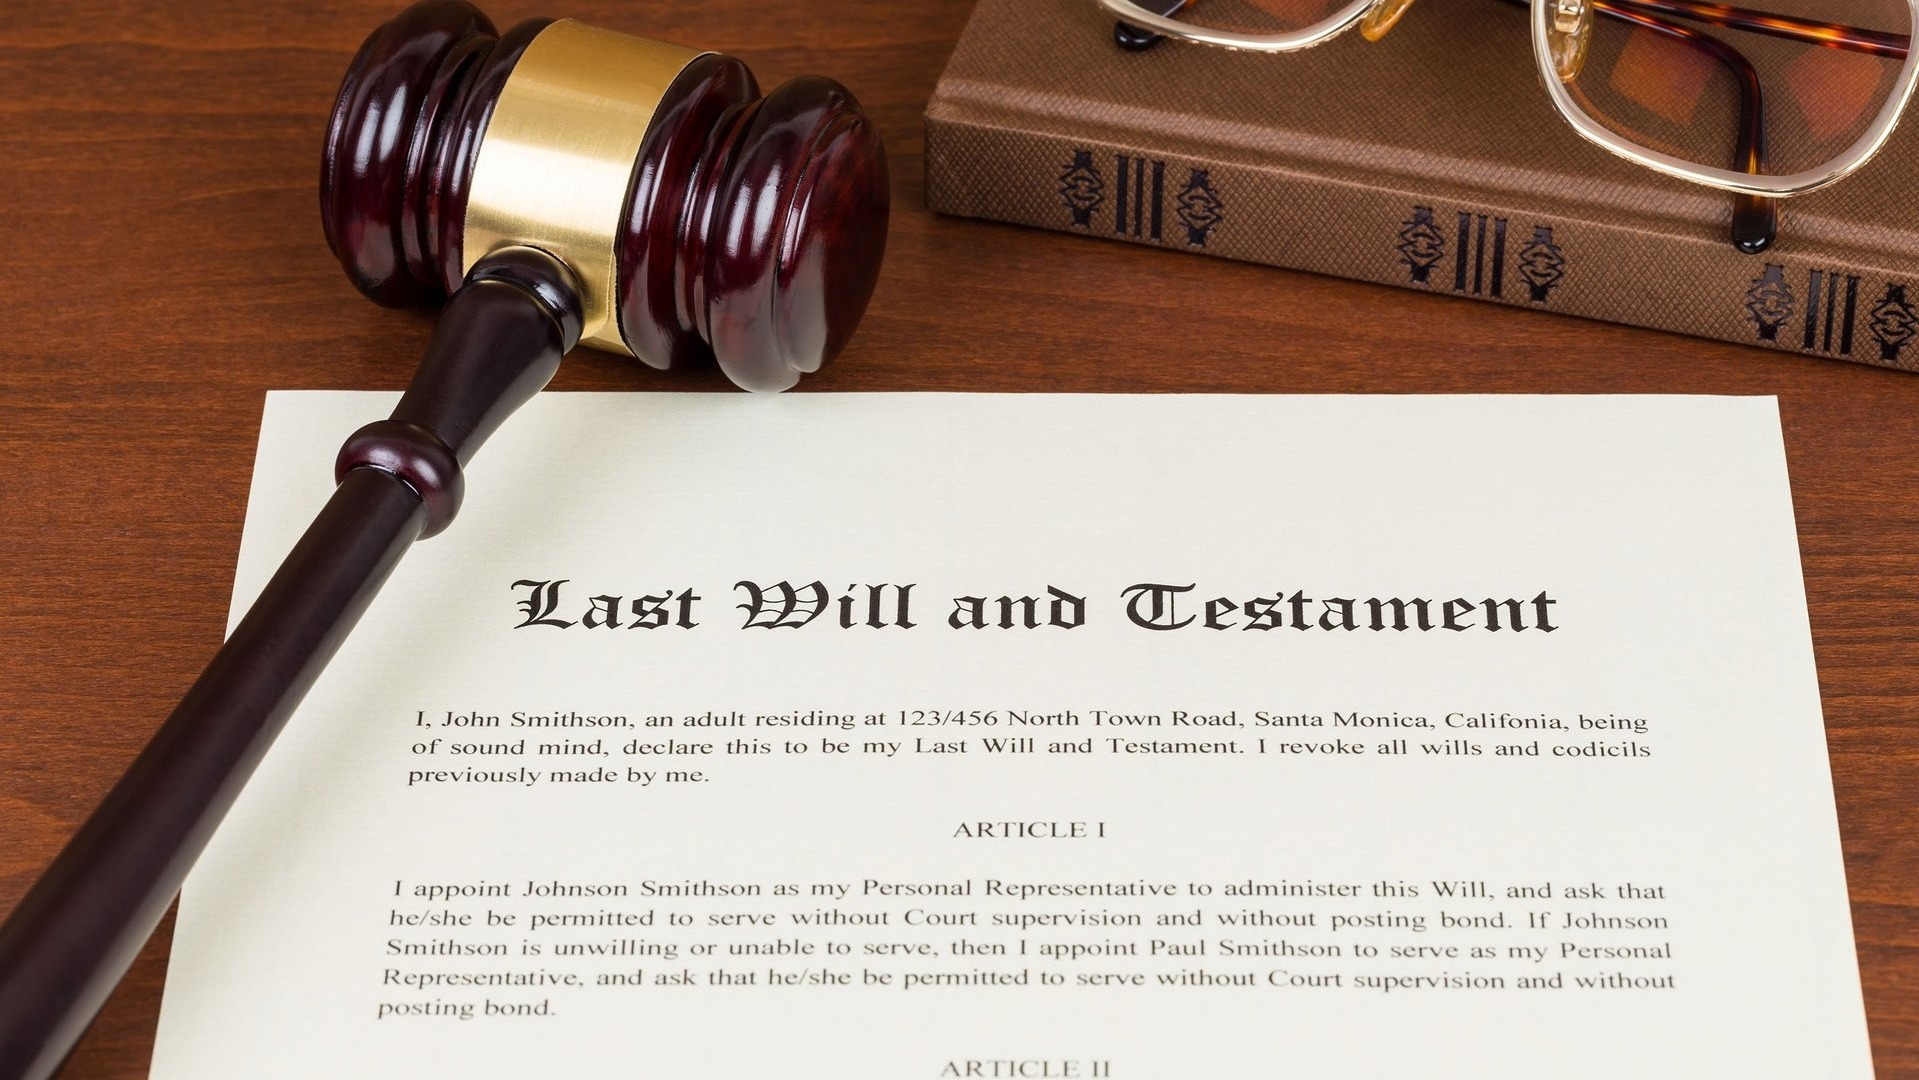 Last Will and Testament with gavel on top